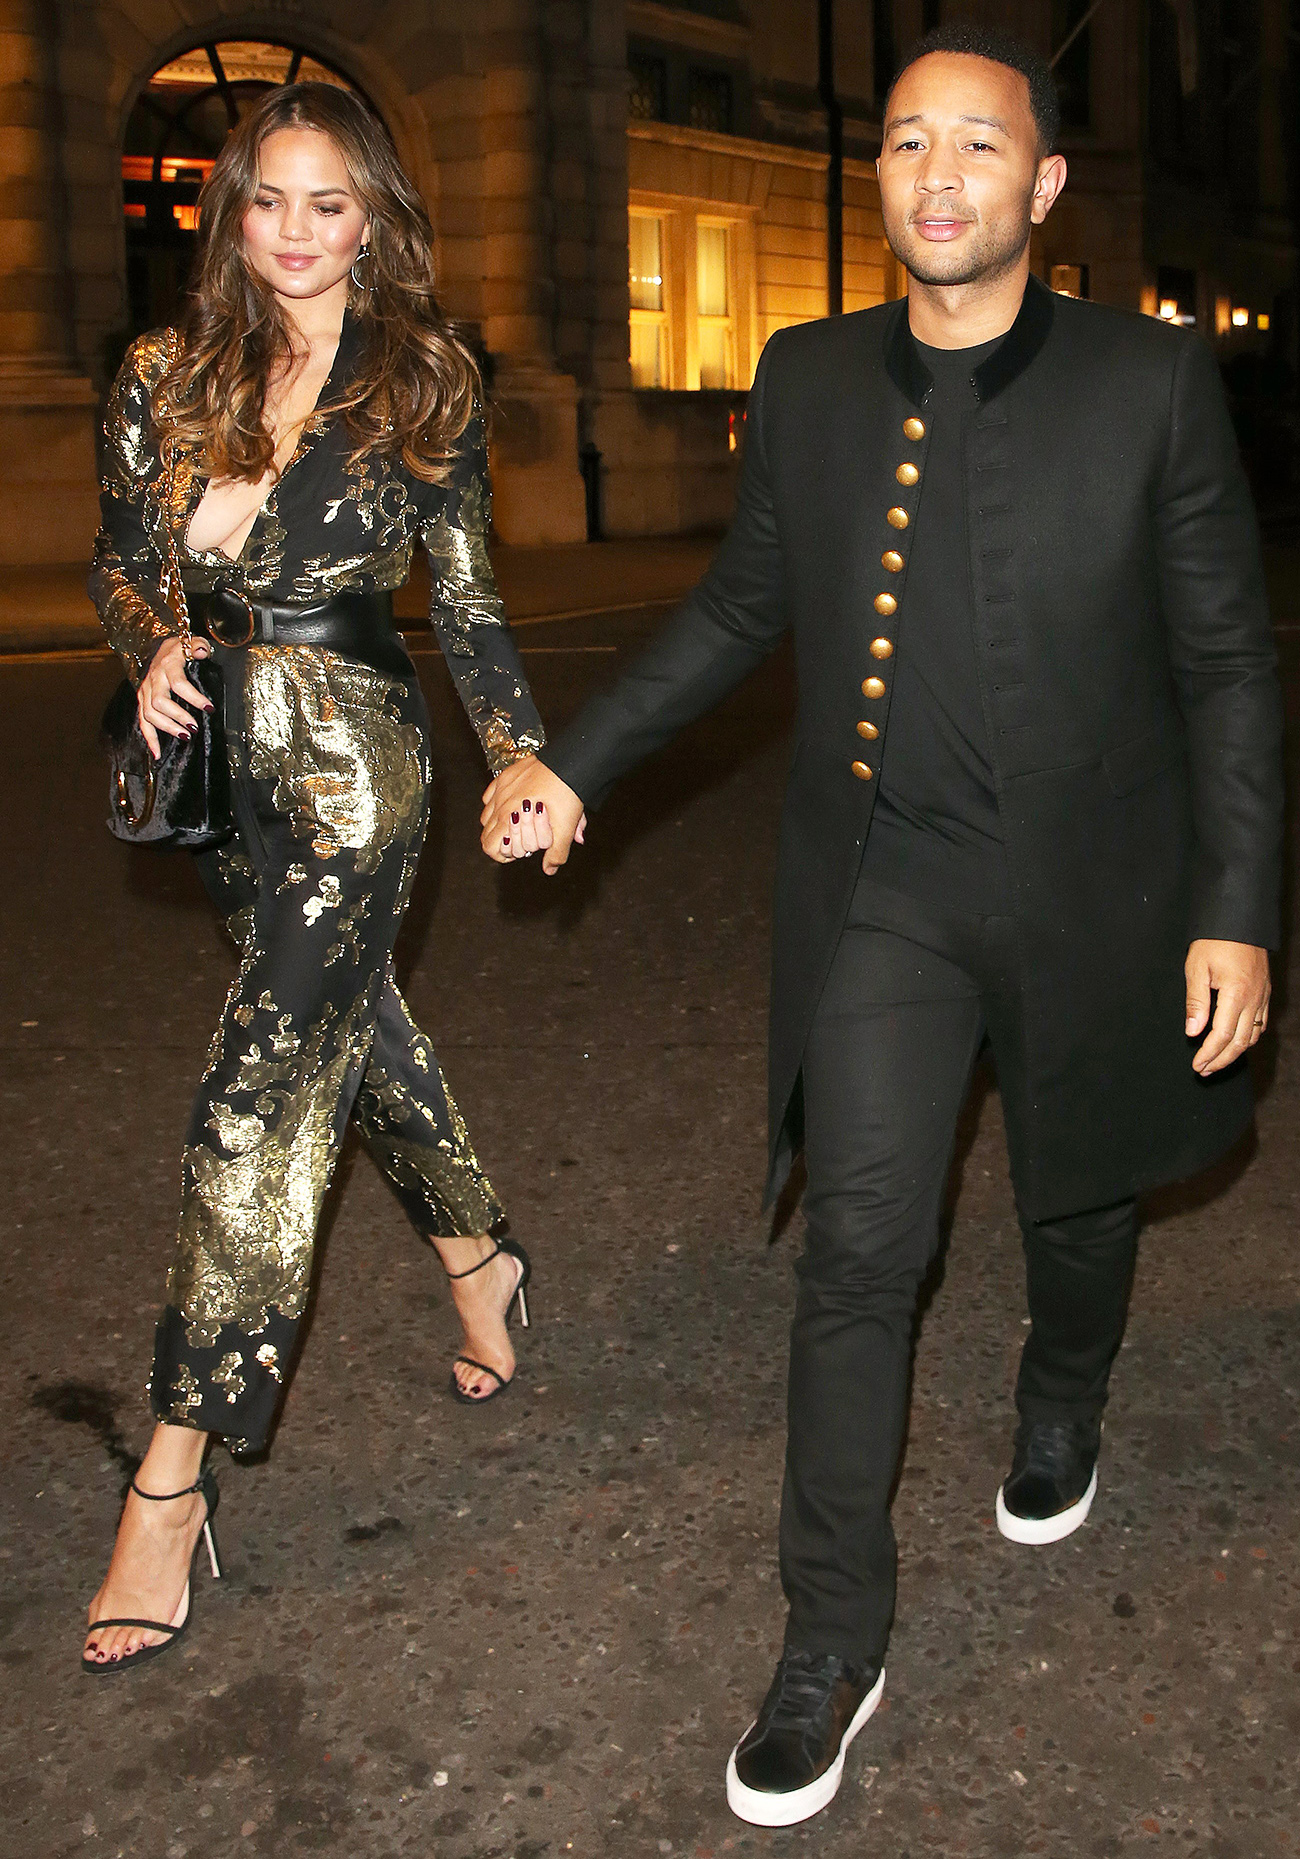 Chrissy Teigen and John Legend Date Night - Lead